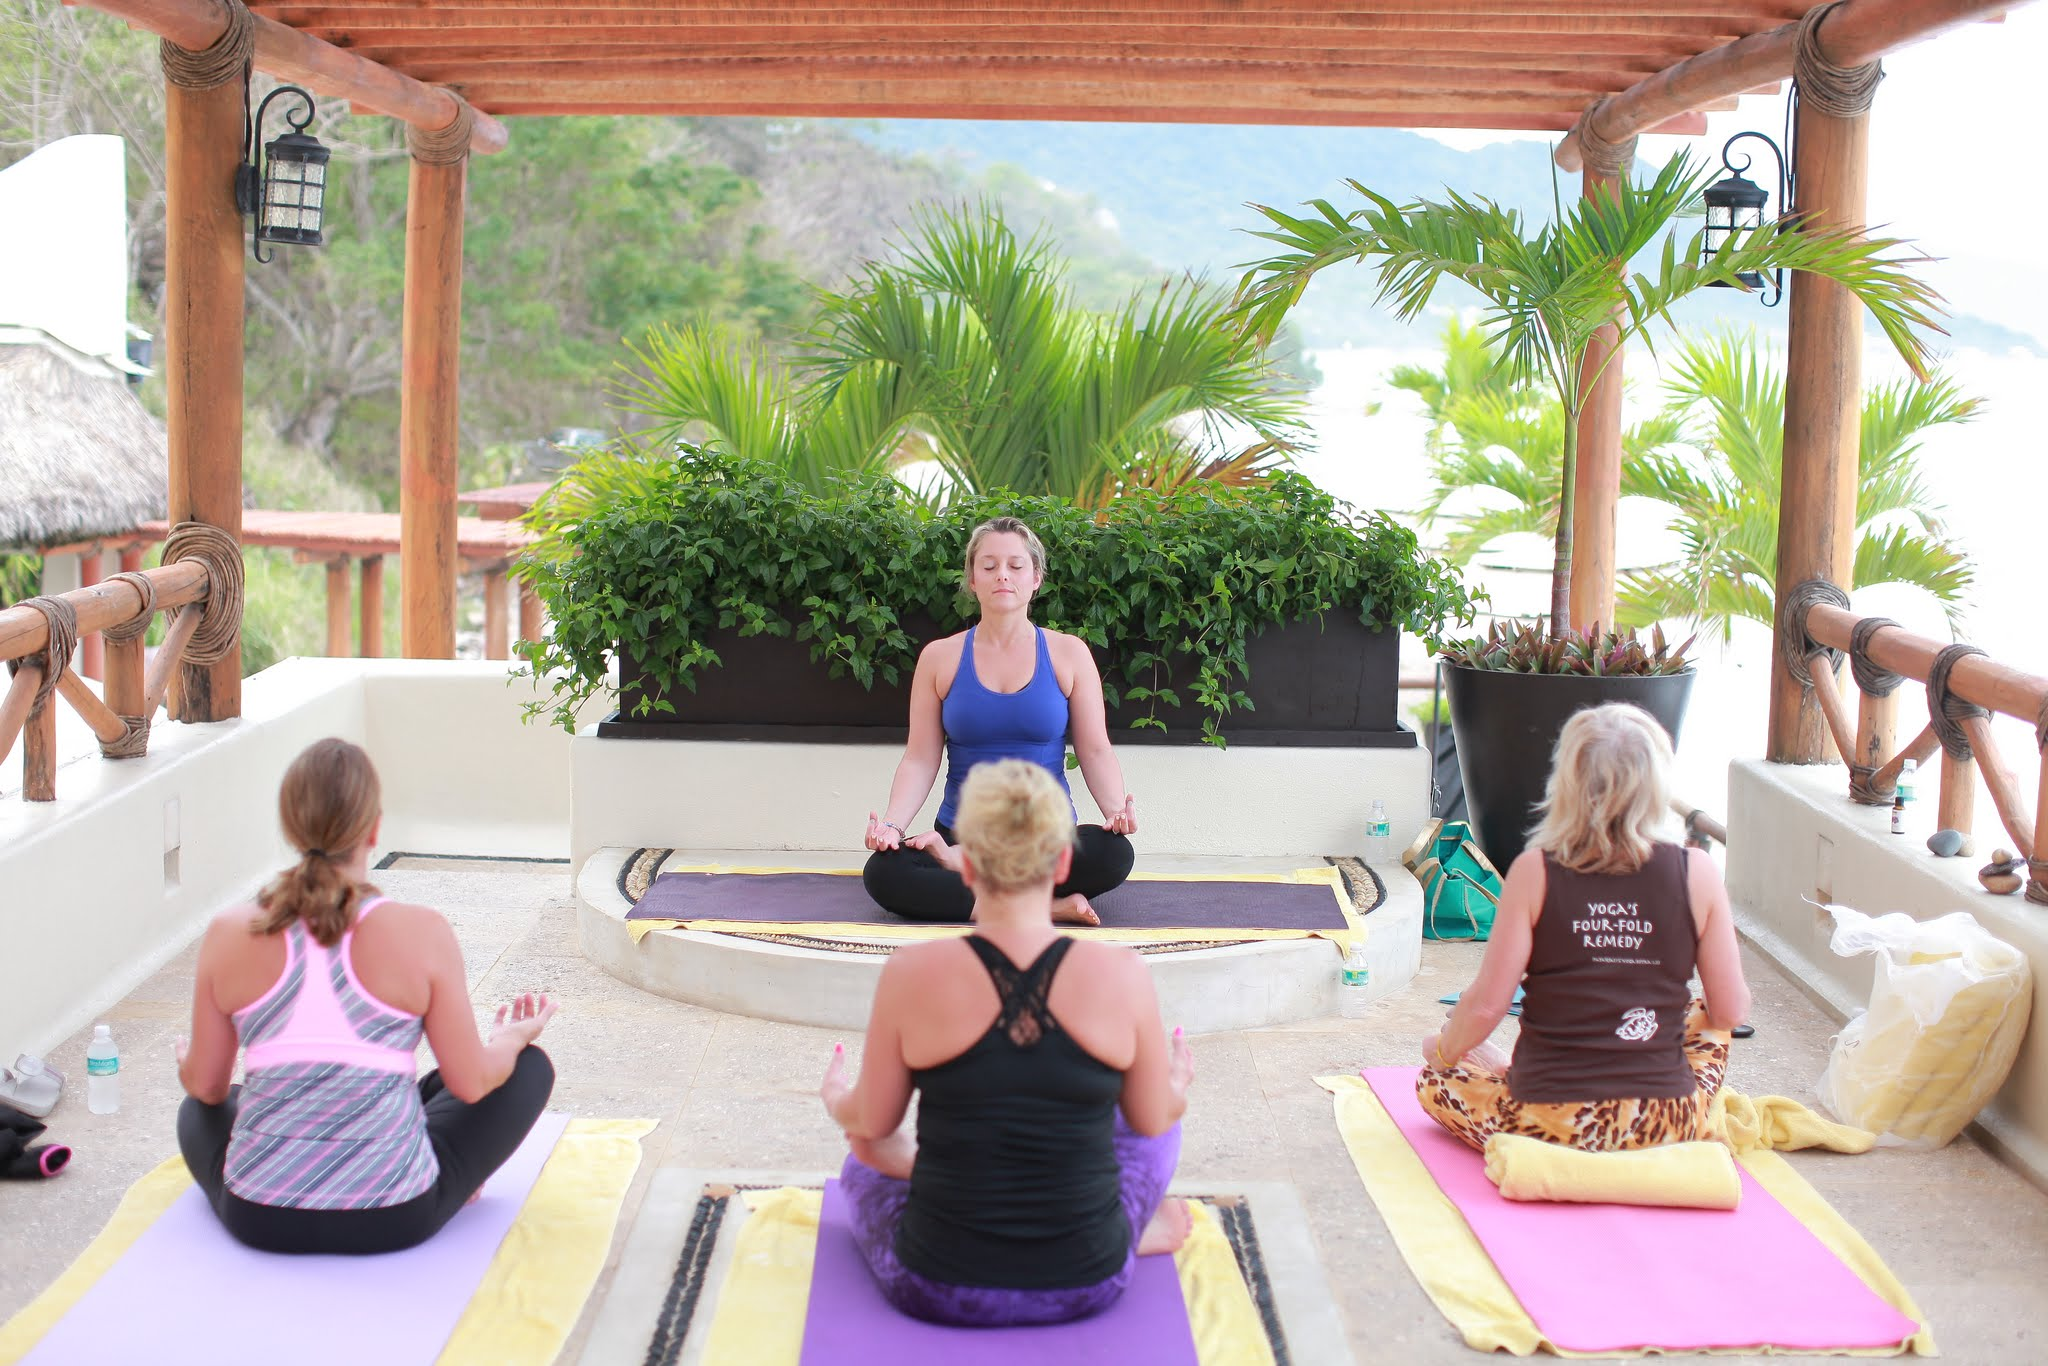 RENEW - We will take care of our minds, bodies and souls with a daily yoga and meditation practice